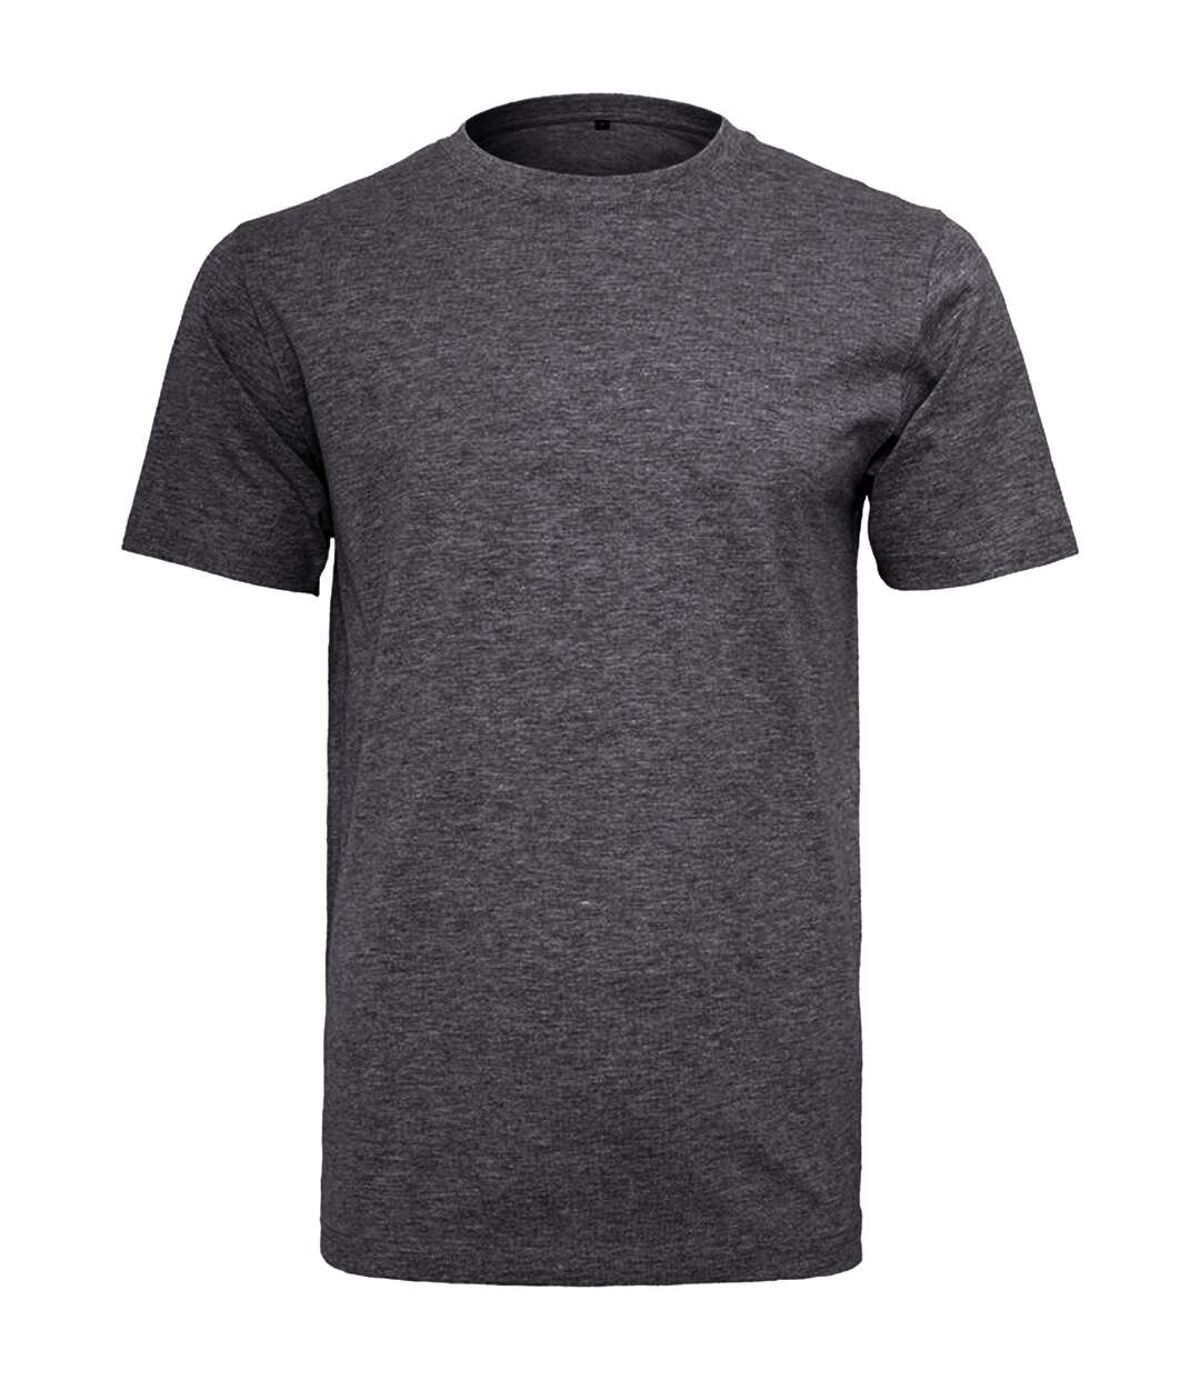 Build Your Brand Mens Short Sleeve Round Neck T-Shirt (Charcoal) - UTRW5685